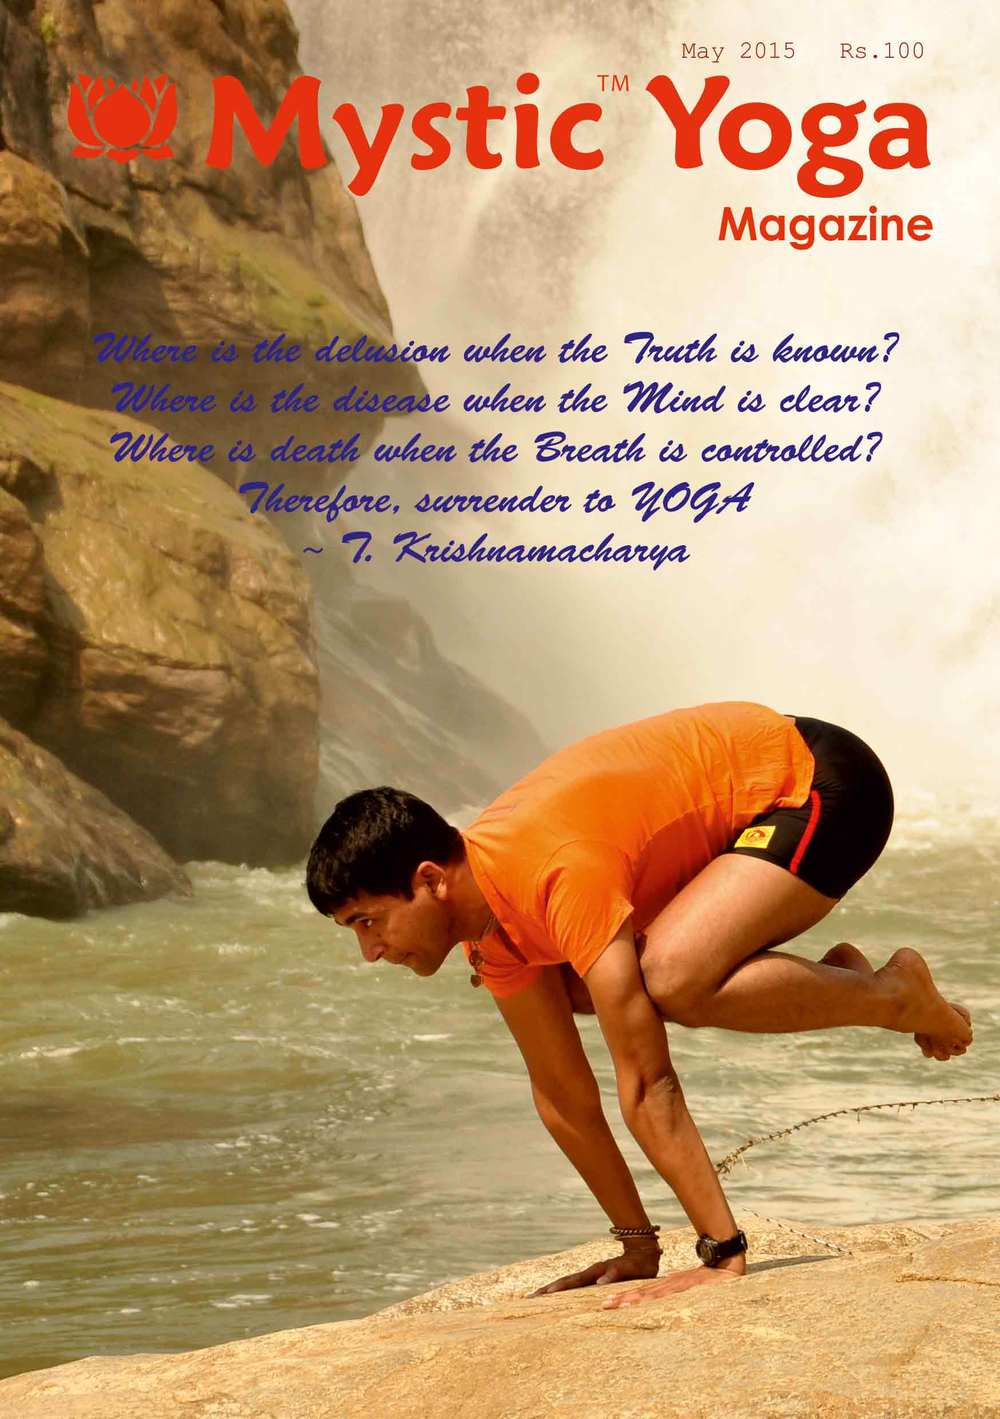 Mystic Yoga Magazine - May 2015